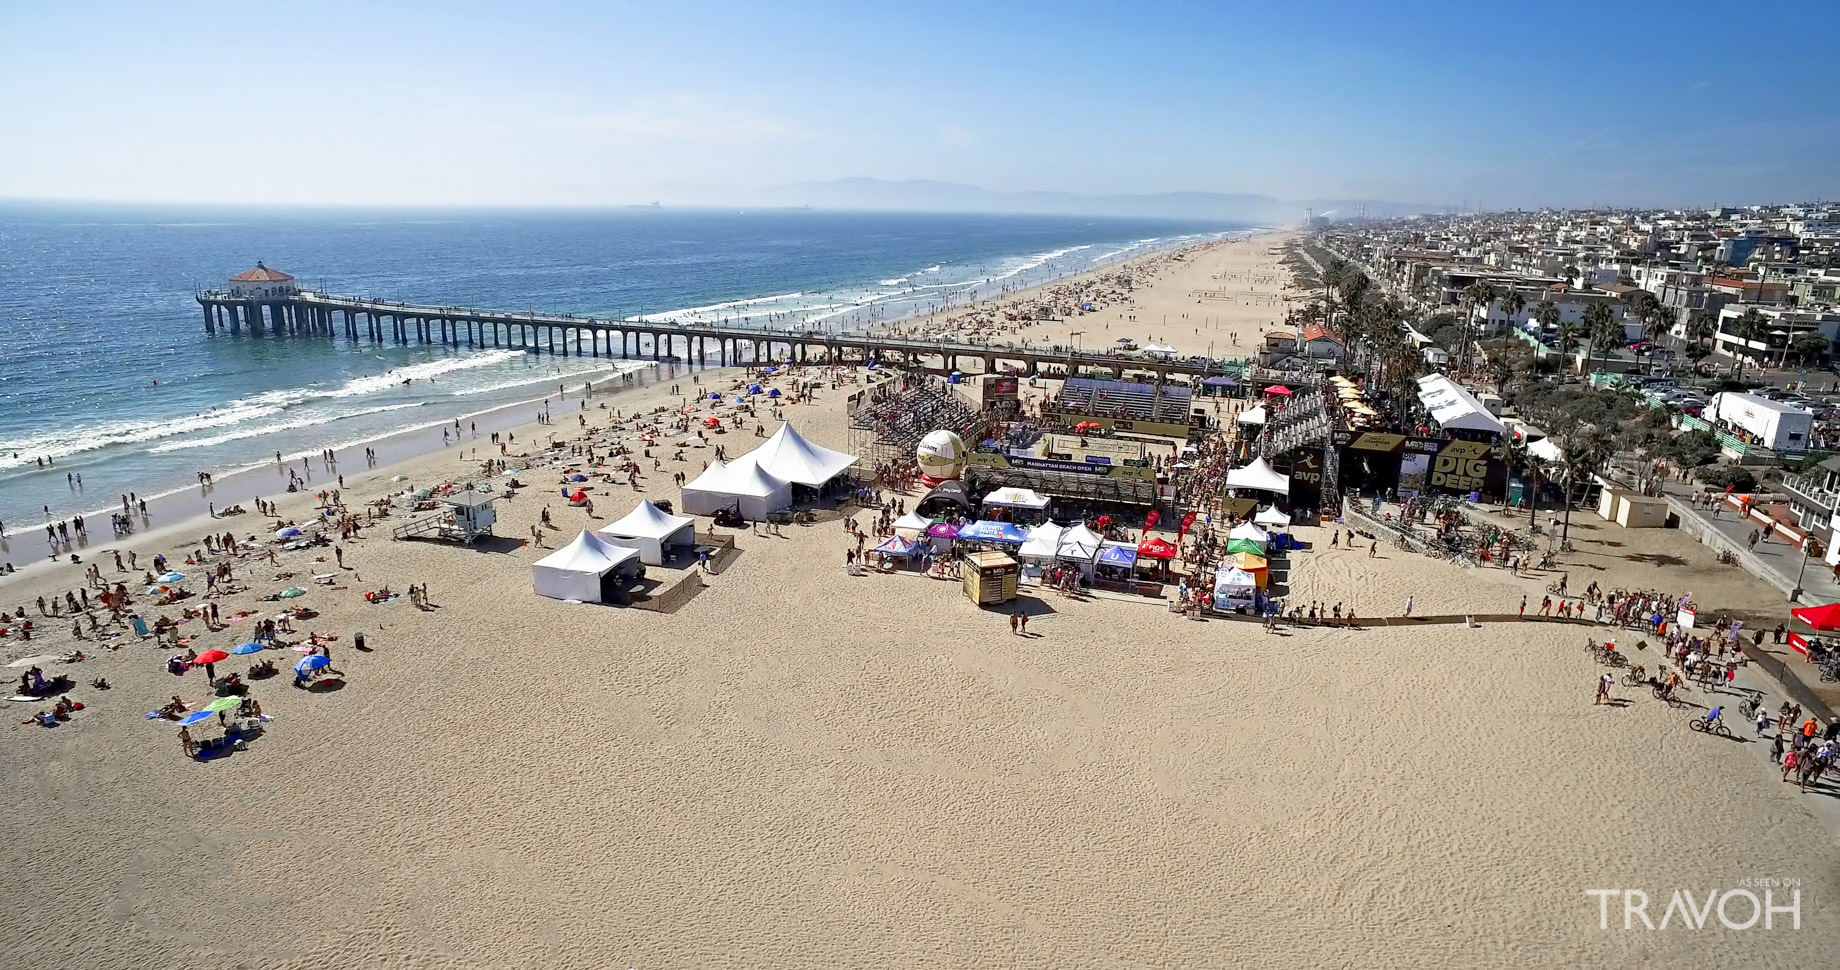 Manhattan Beach - Exploring 10 of the Top Beaches in Los Angeles, California